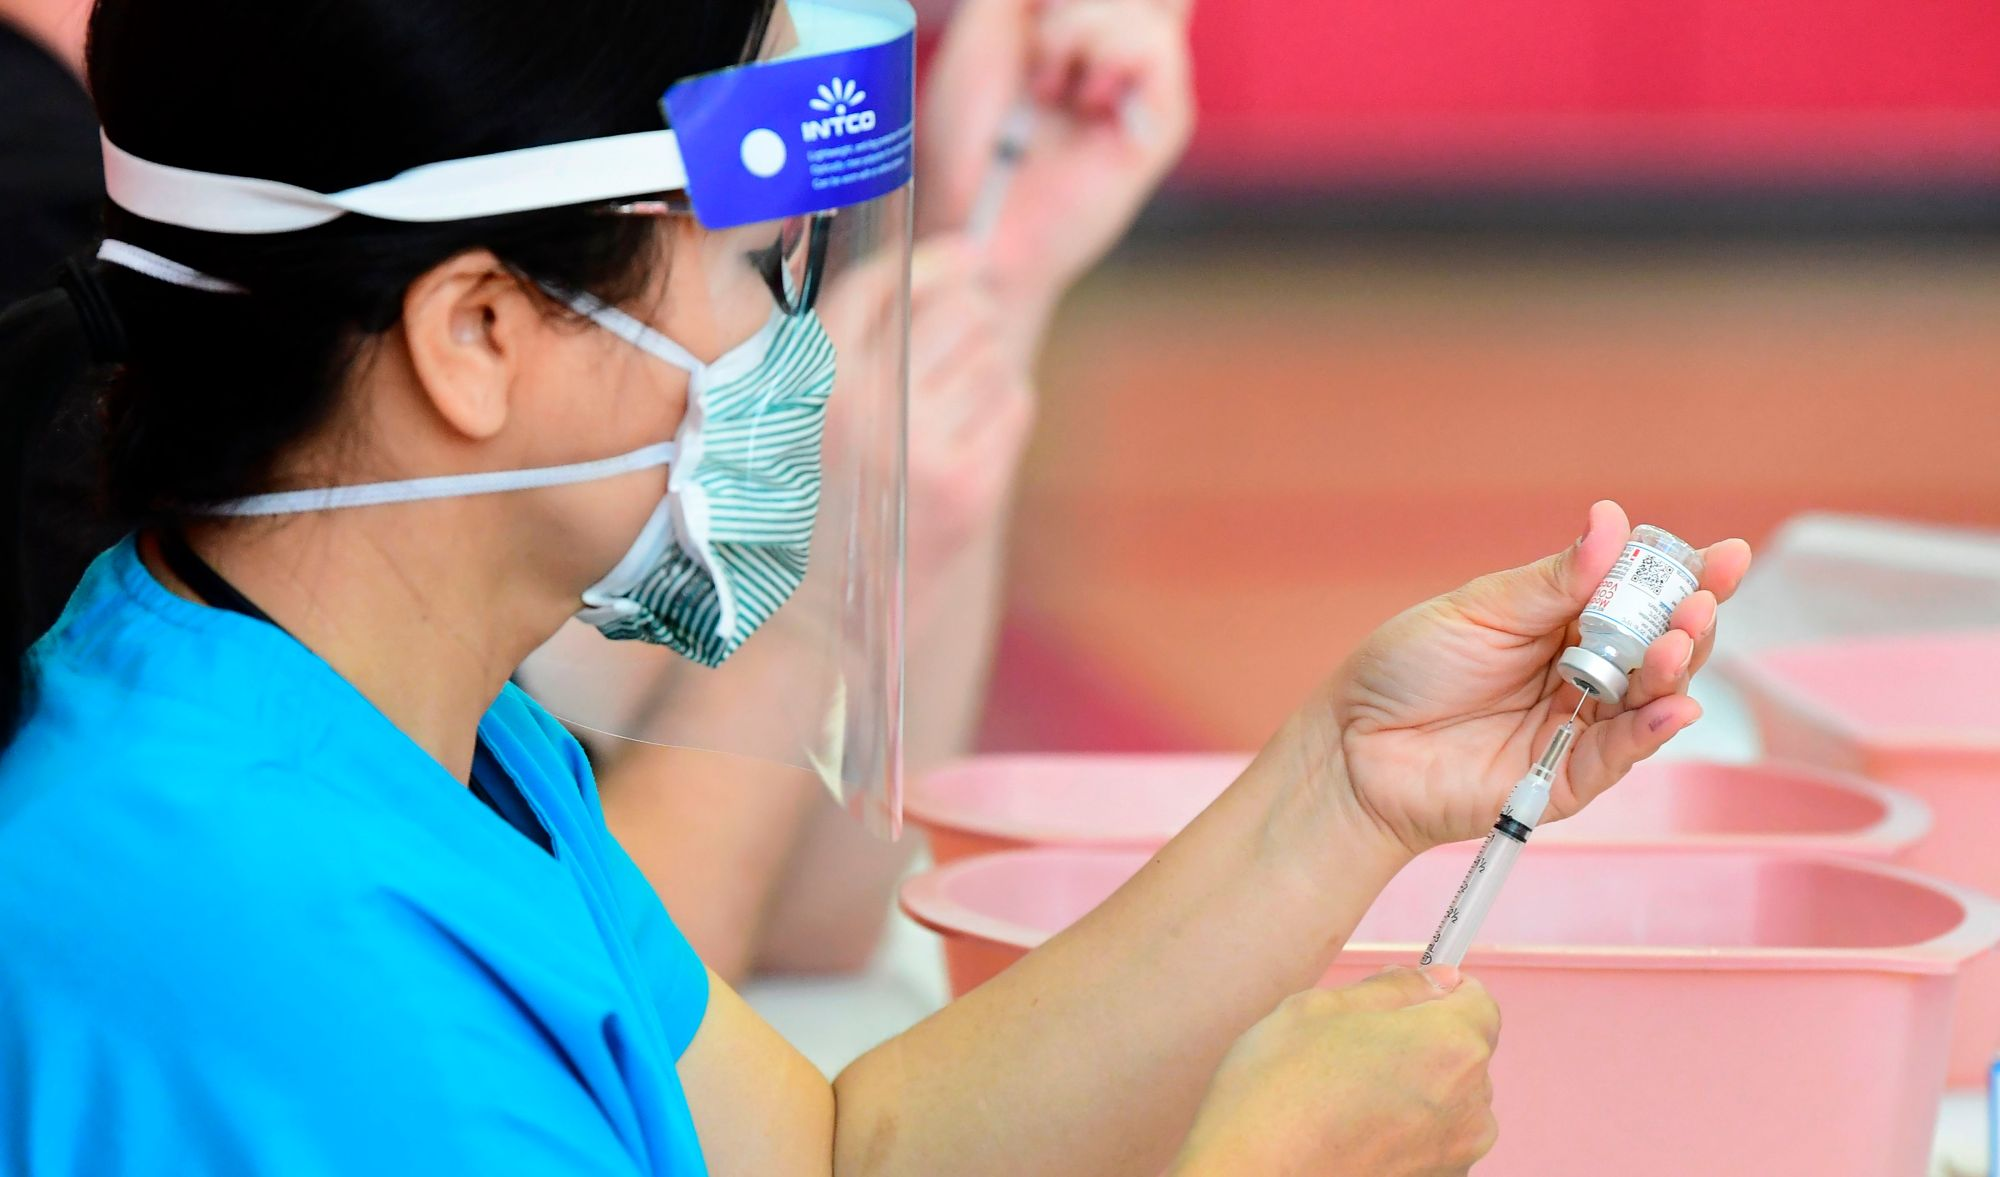 Registered nurses transfer the Moderna COVID-19 vaccine from a bottle into a syringe ready for vaccination at the Corona High School gymnasium in the Riverside County city of Corona, on Jan. 15, 2021. (FREDERIC J. BROWN/AFP via Getty Images)